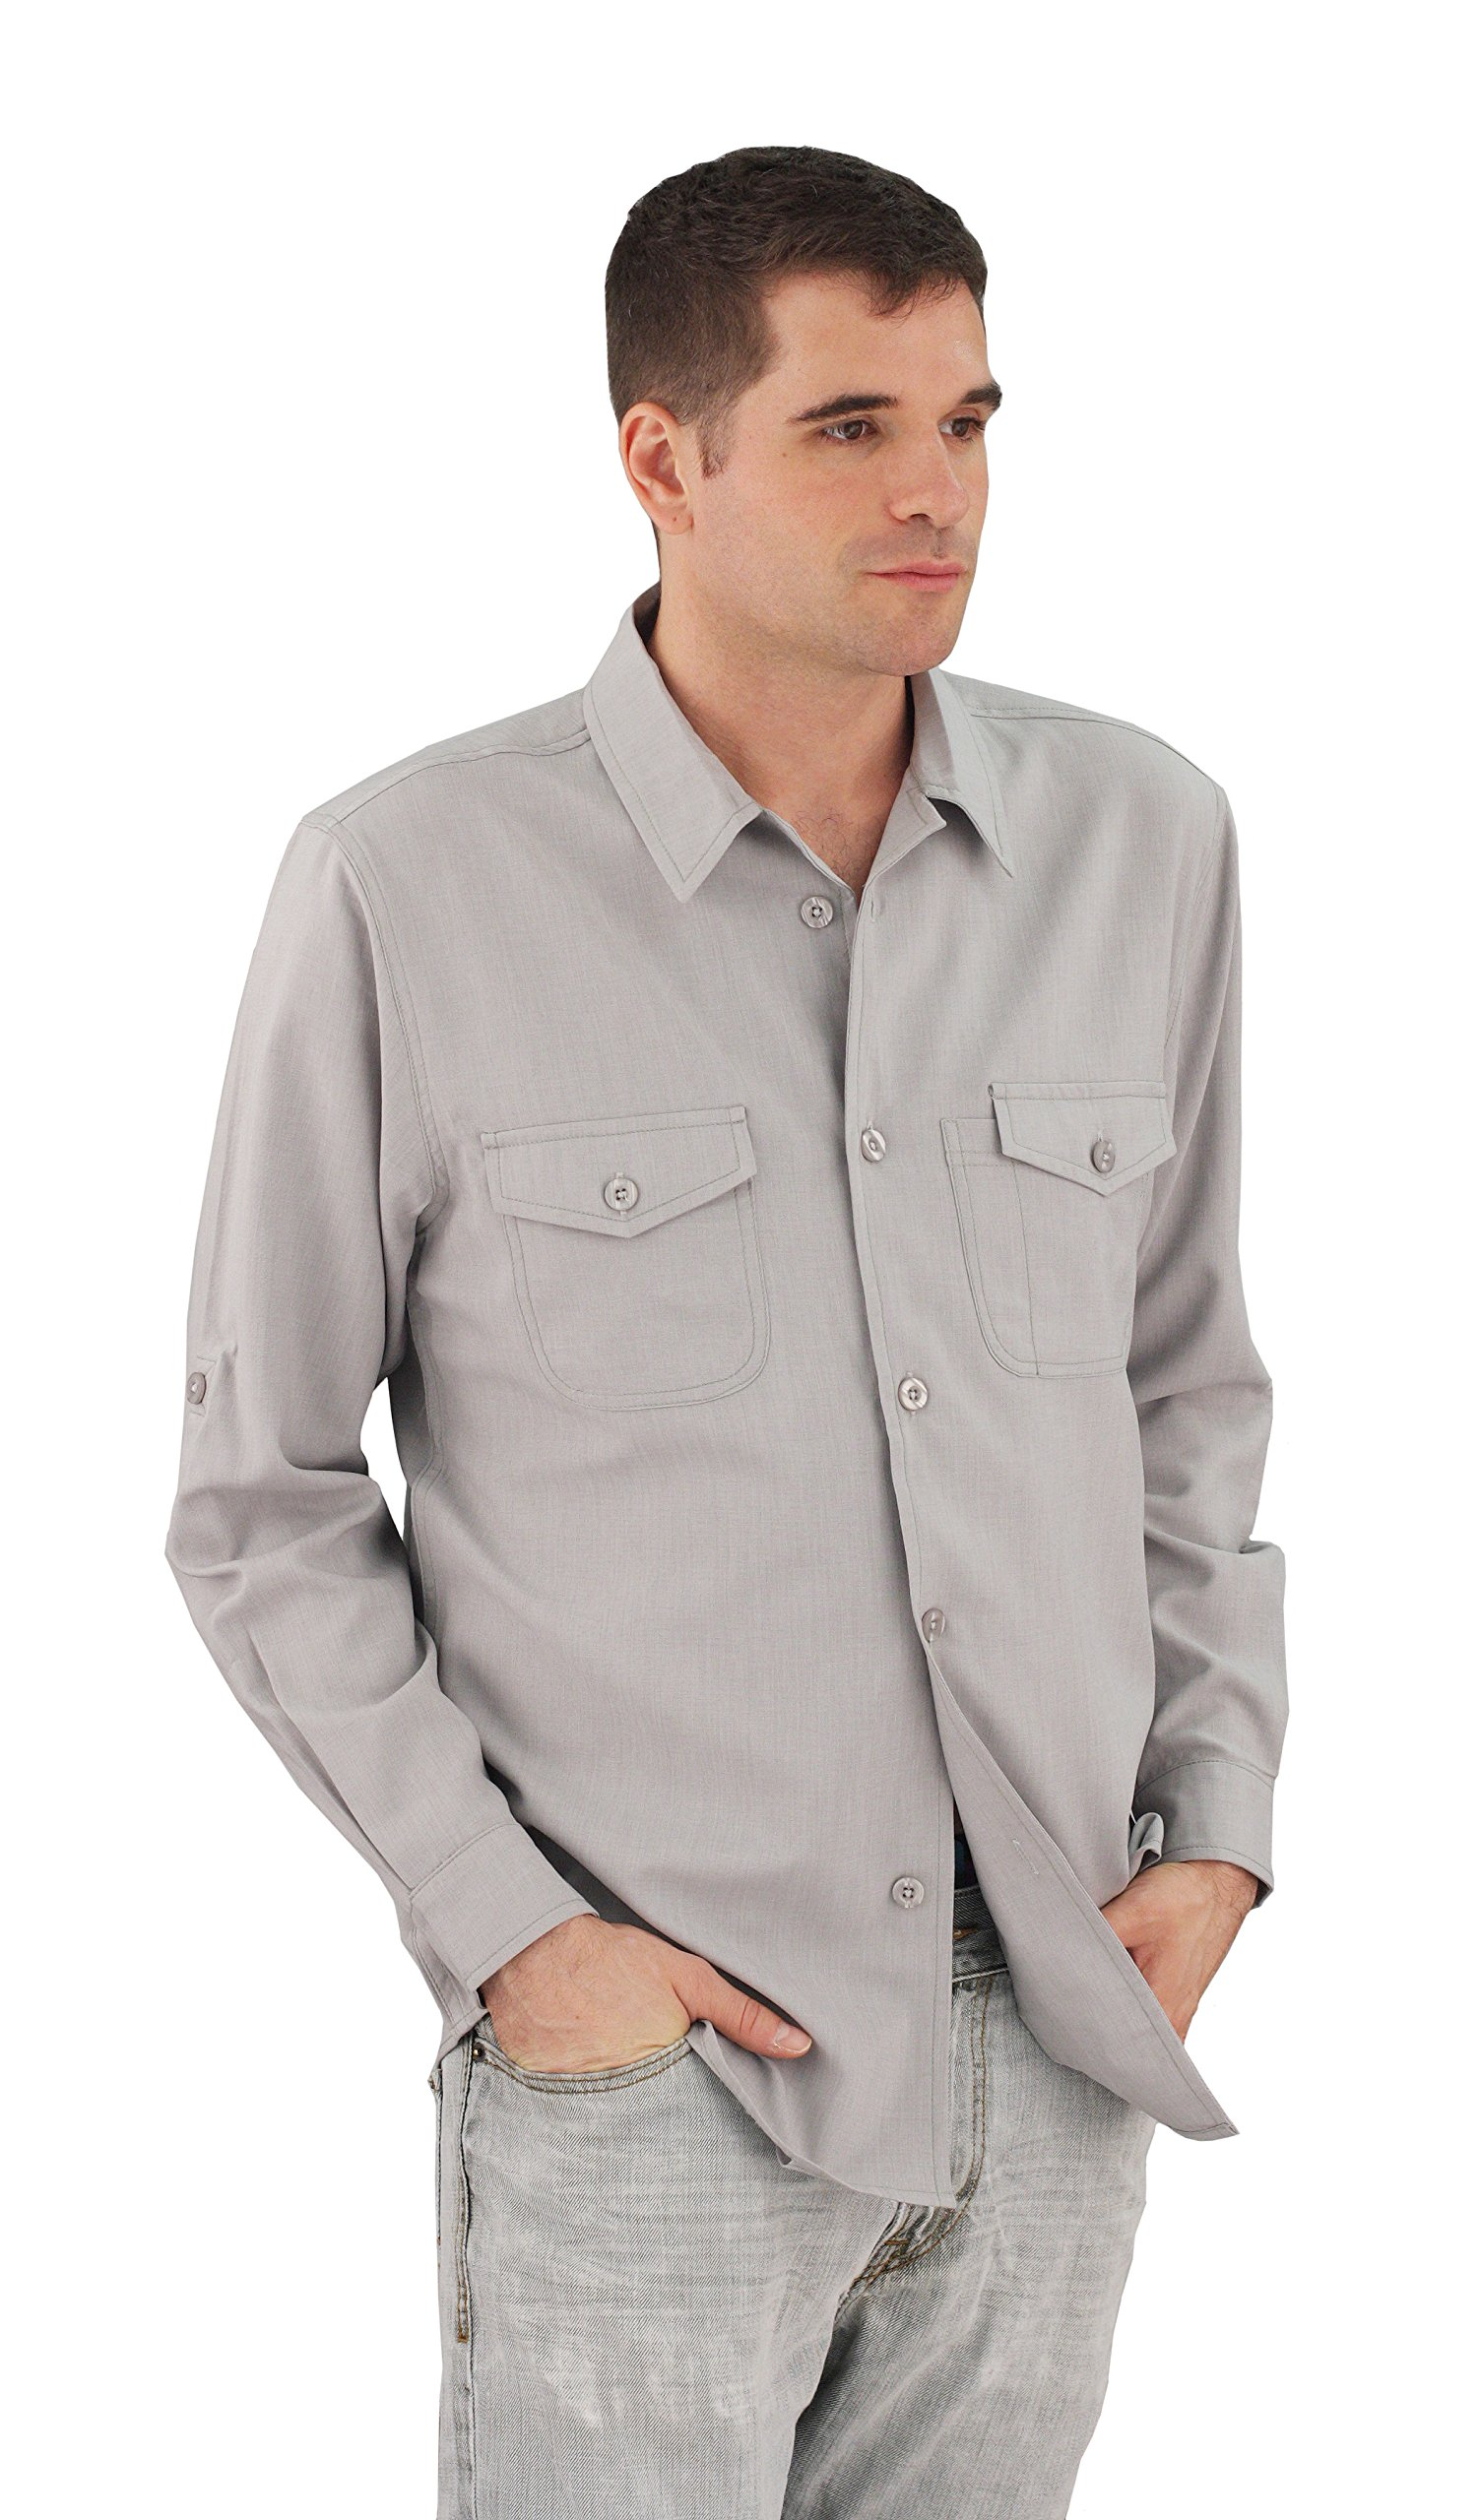 ASD Living Zanzibar Long Sleeve Dry Fit Server Waitstaff Shirt, X-Large, Grey by ASD Living